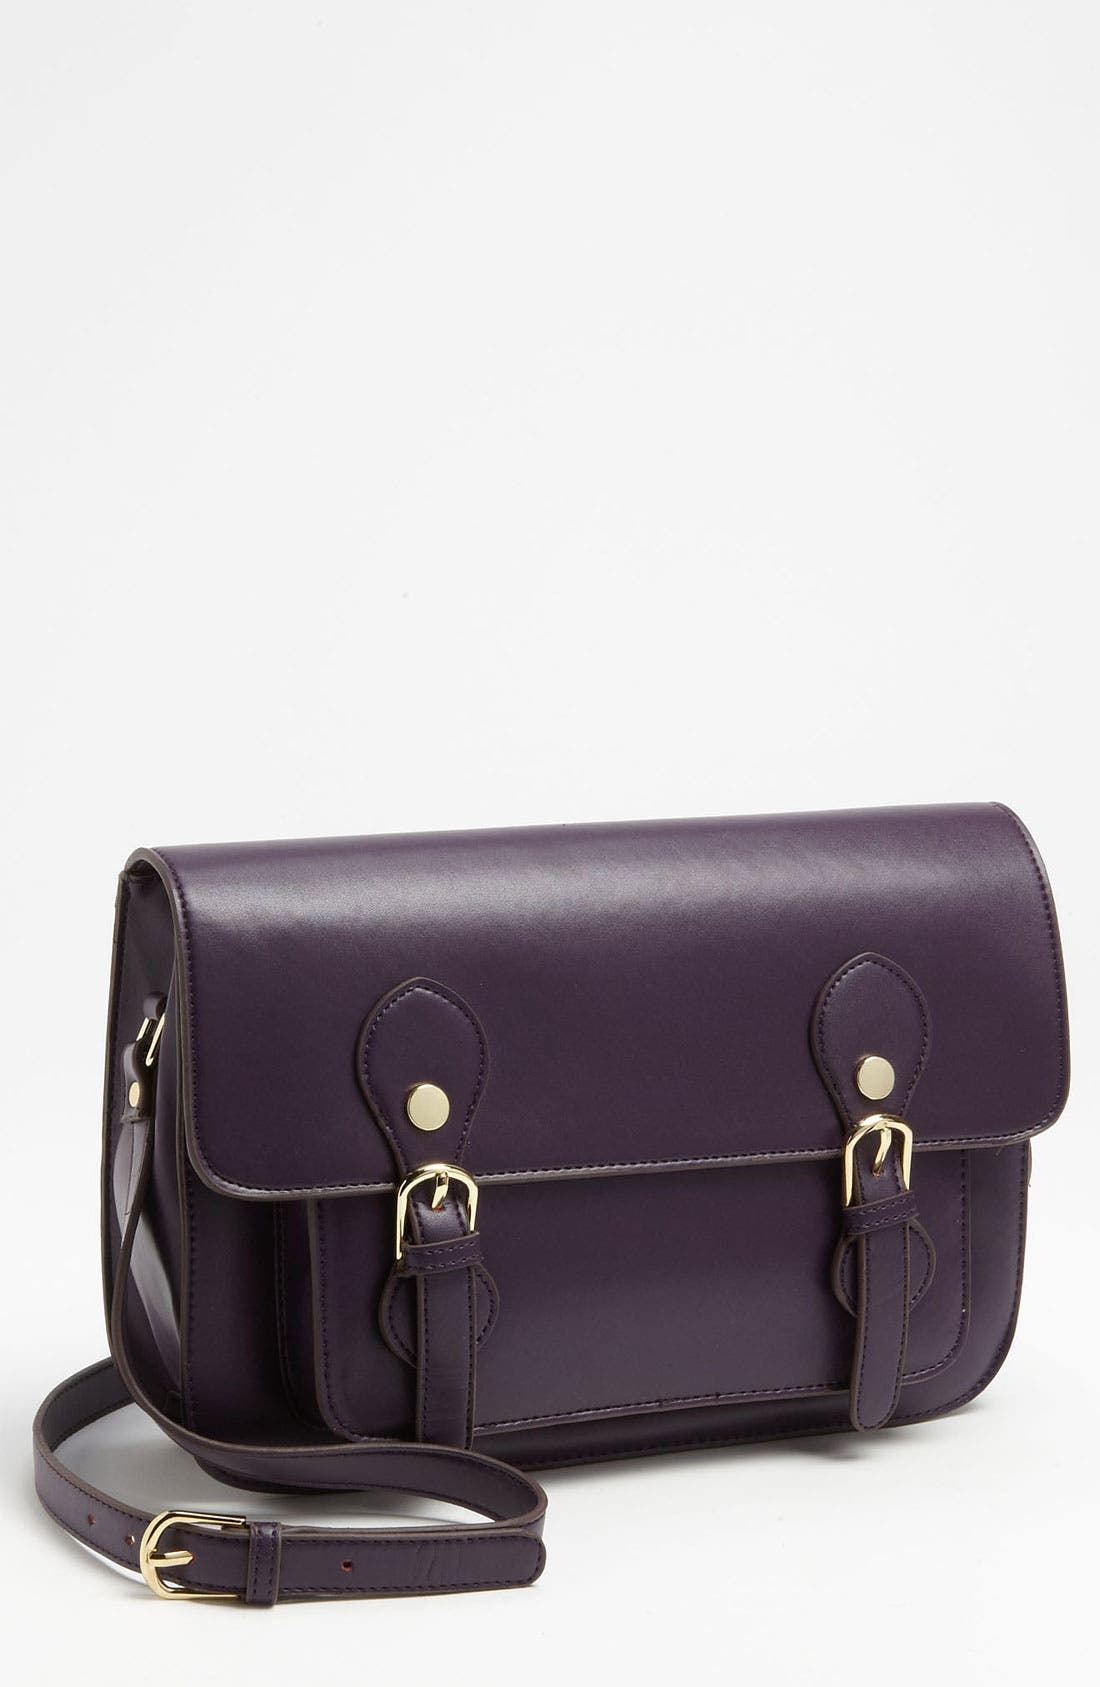 Alternate Image 1 Selected - Steven by Steve Madden 'Large' Crossbody Bag